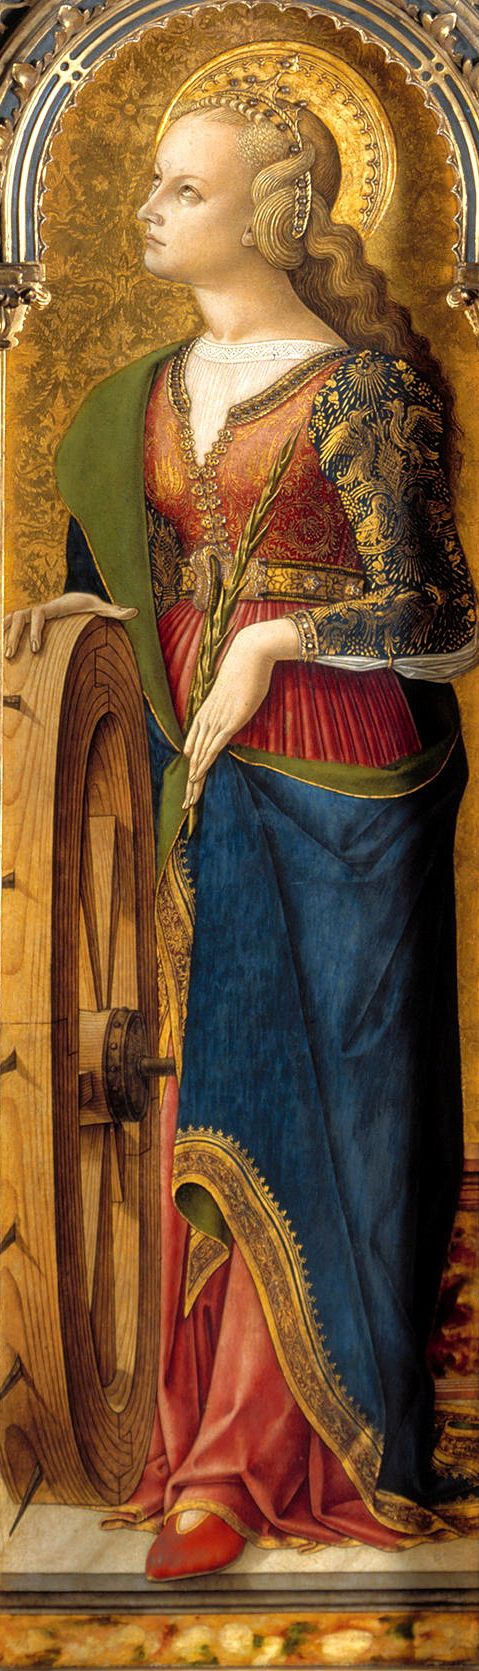 Carlo crivelli 1476 sofiy pinterest medieval art carlo crivelli st catherine of alexandria with her symbolic attribute a wheel detail 1476 polyptych of san domenico national gallery london biocorpaavc Image collections